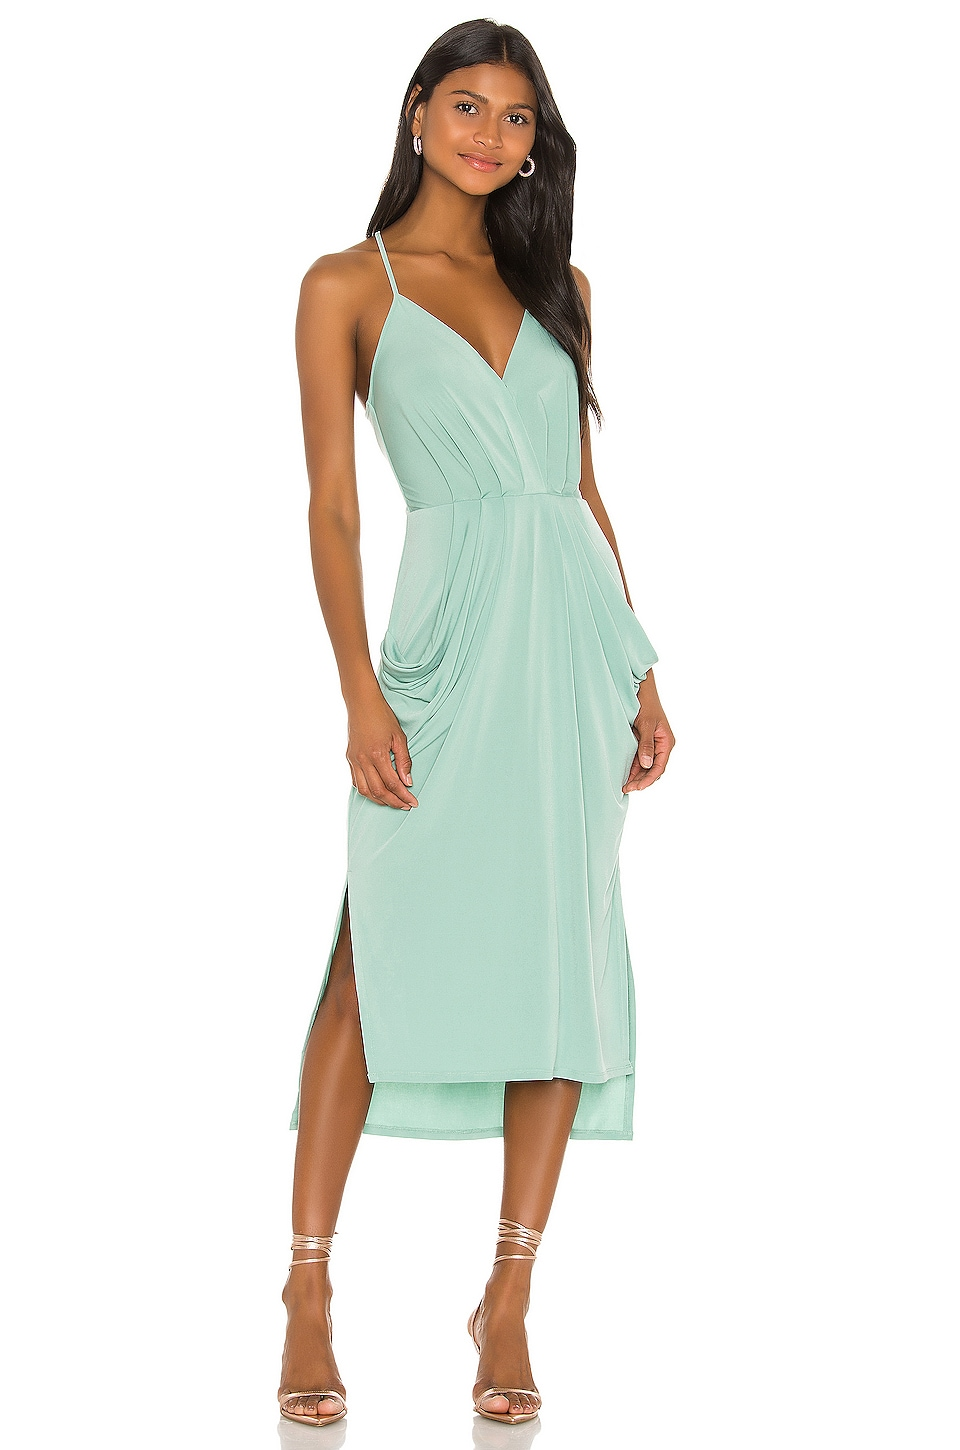 Faux Wrap Midi Dress             BCBGeneration                                                                                                                                         Sale price:                                                                       CA$ 51.34                                                                  Previous price:                                                                       CA$ 105.38 16